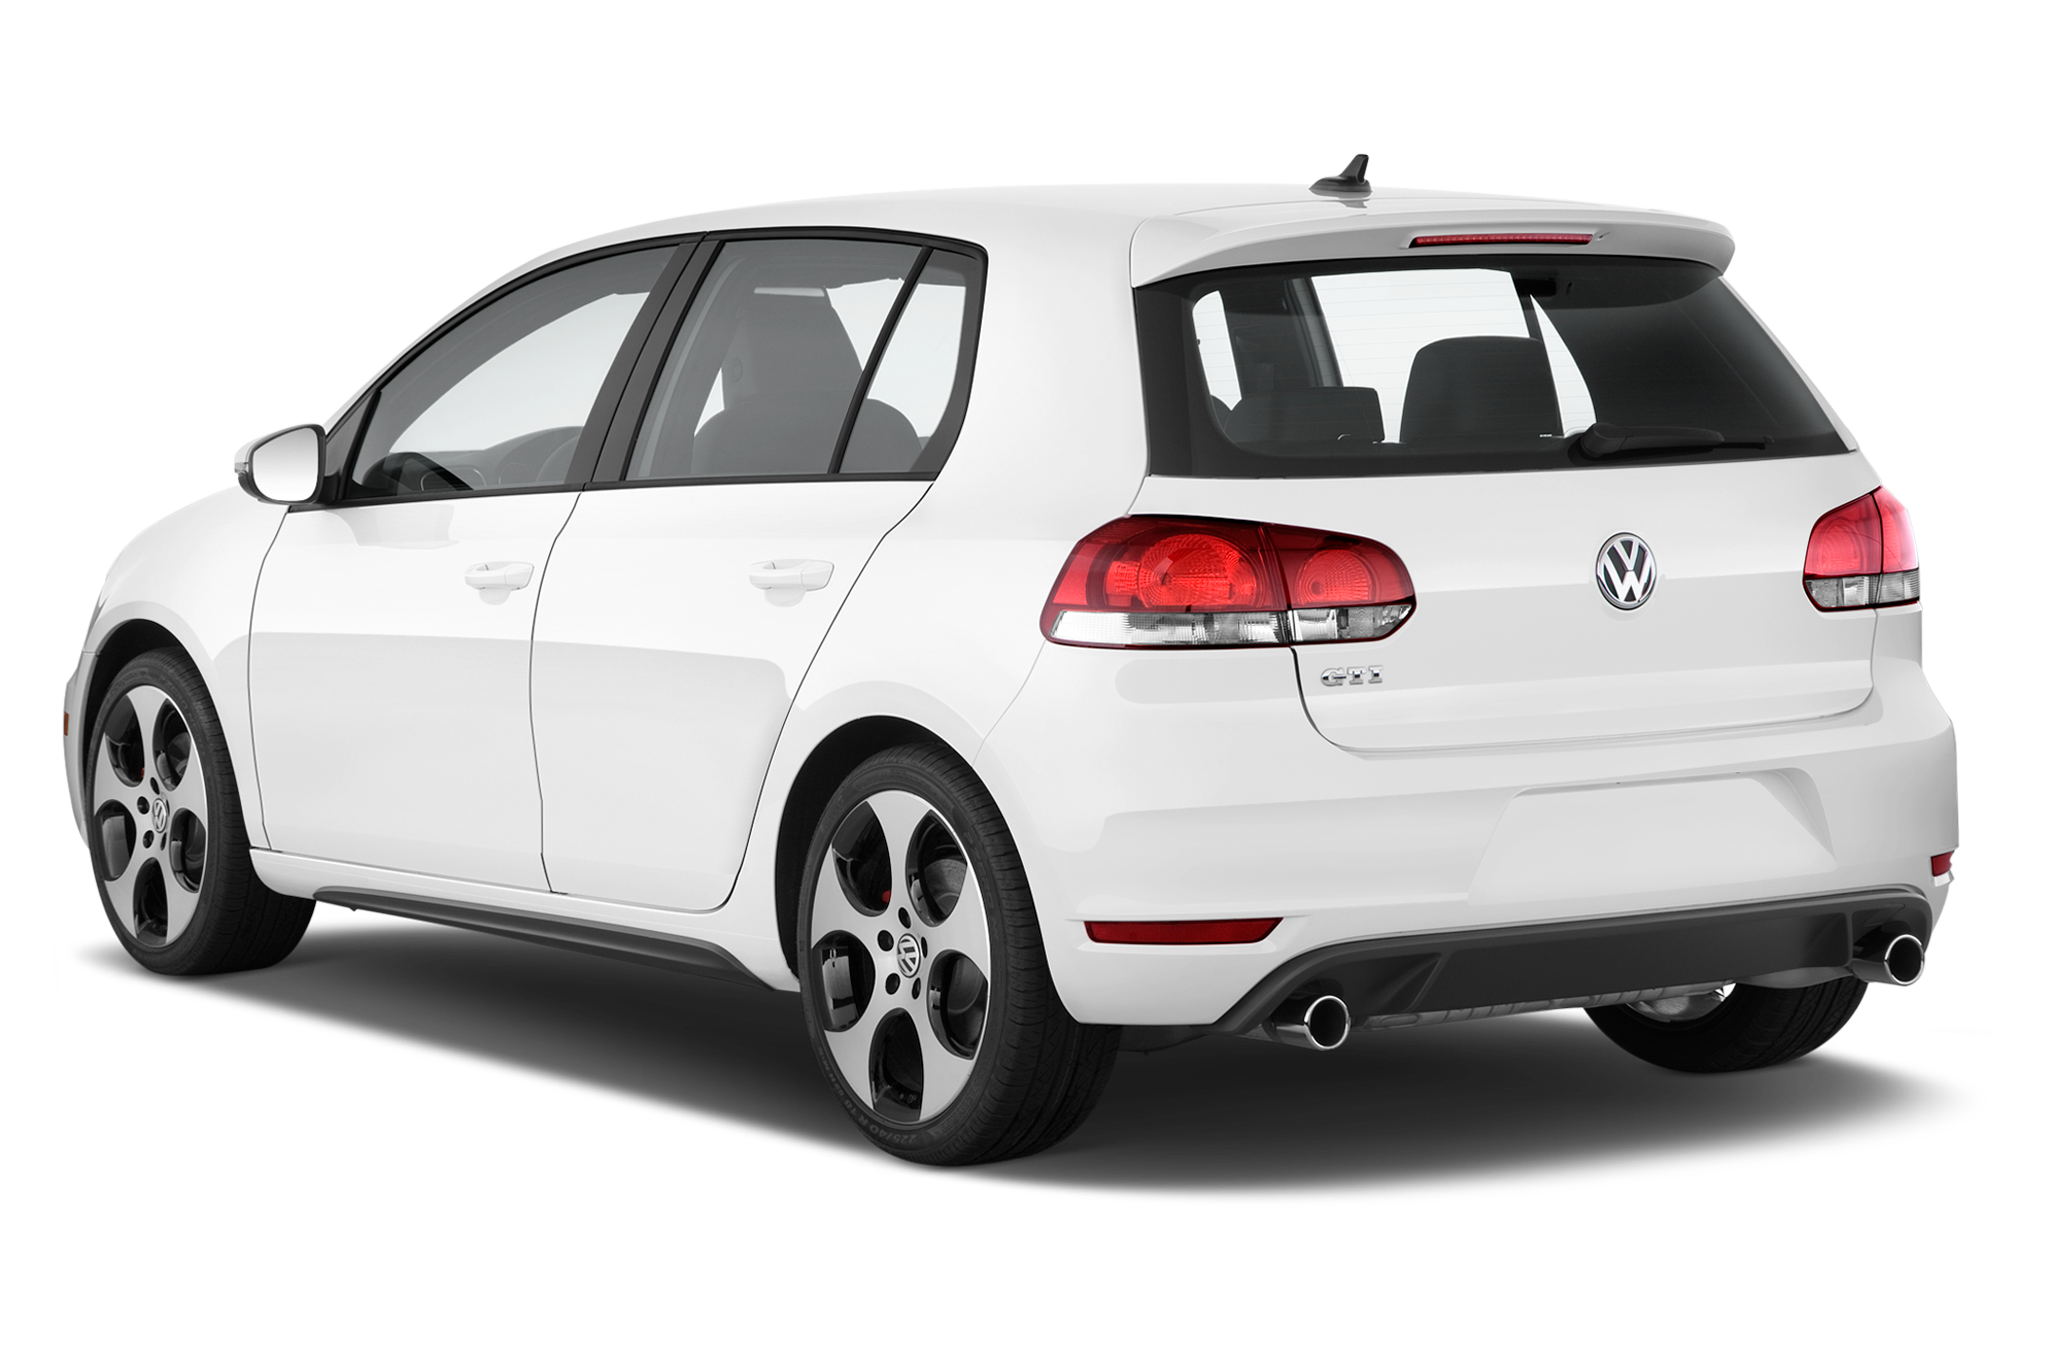 How One Owner Built A 375 Hp 2011 Volkswagen Gti